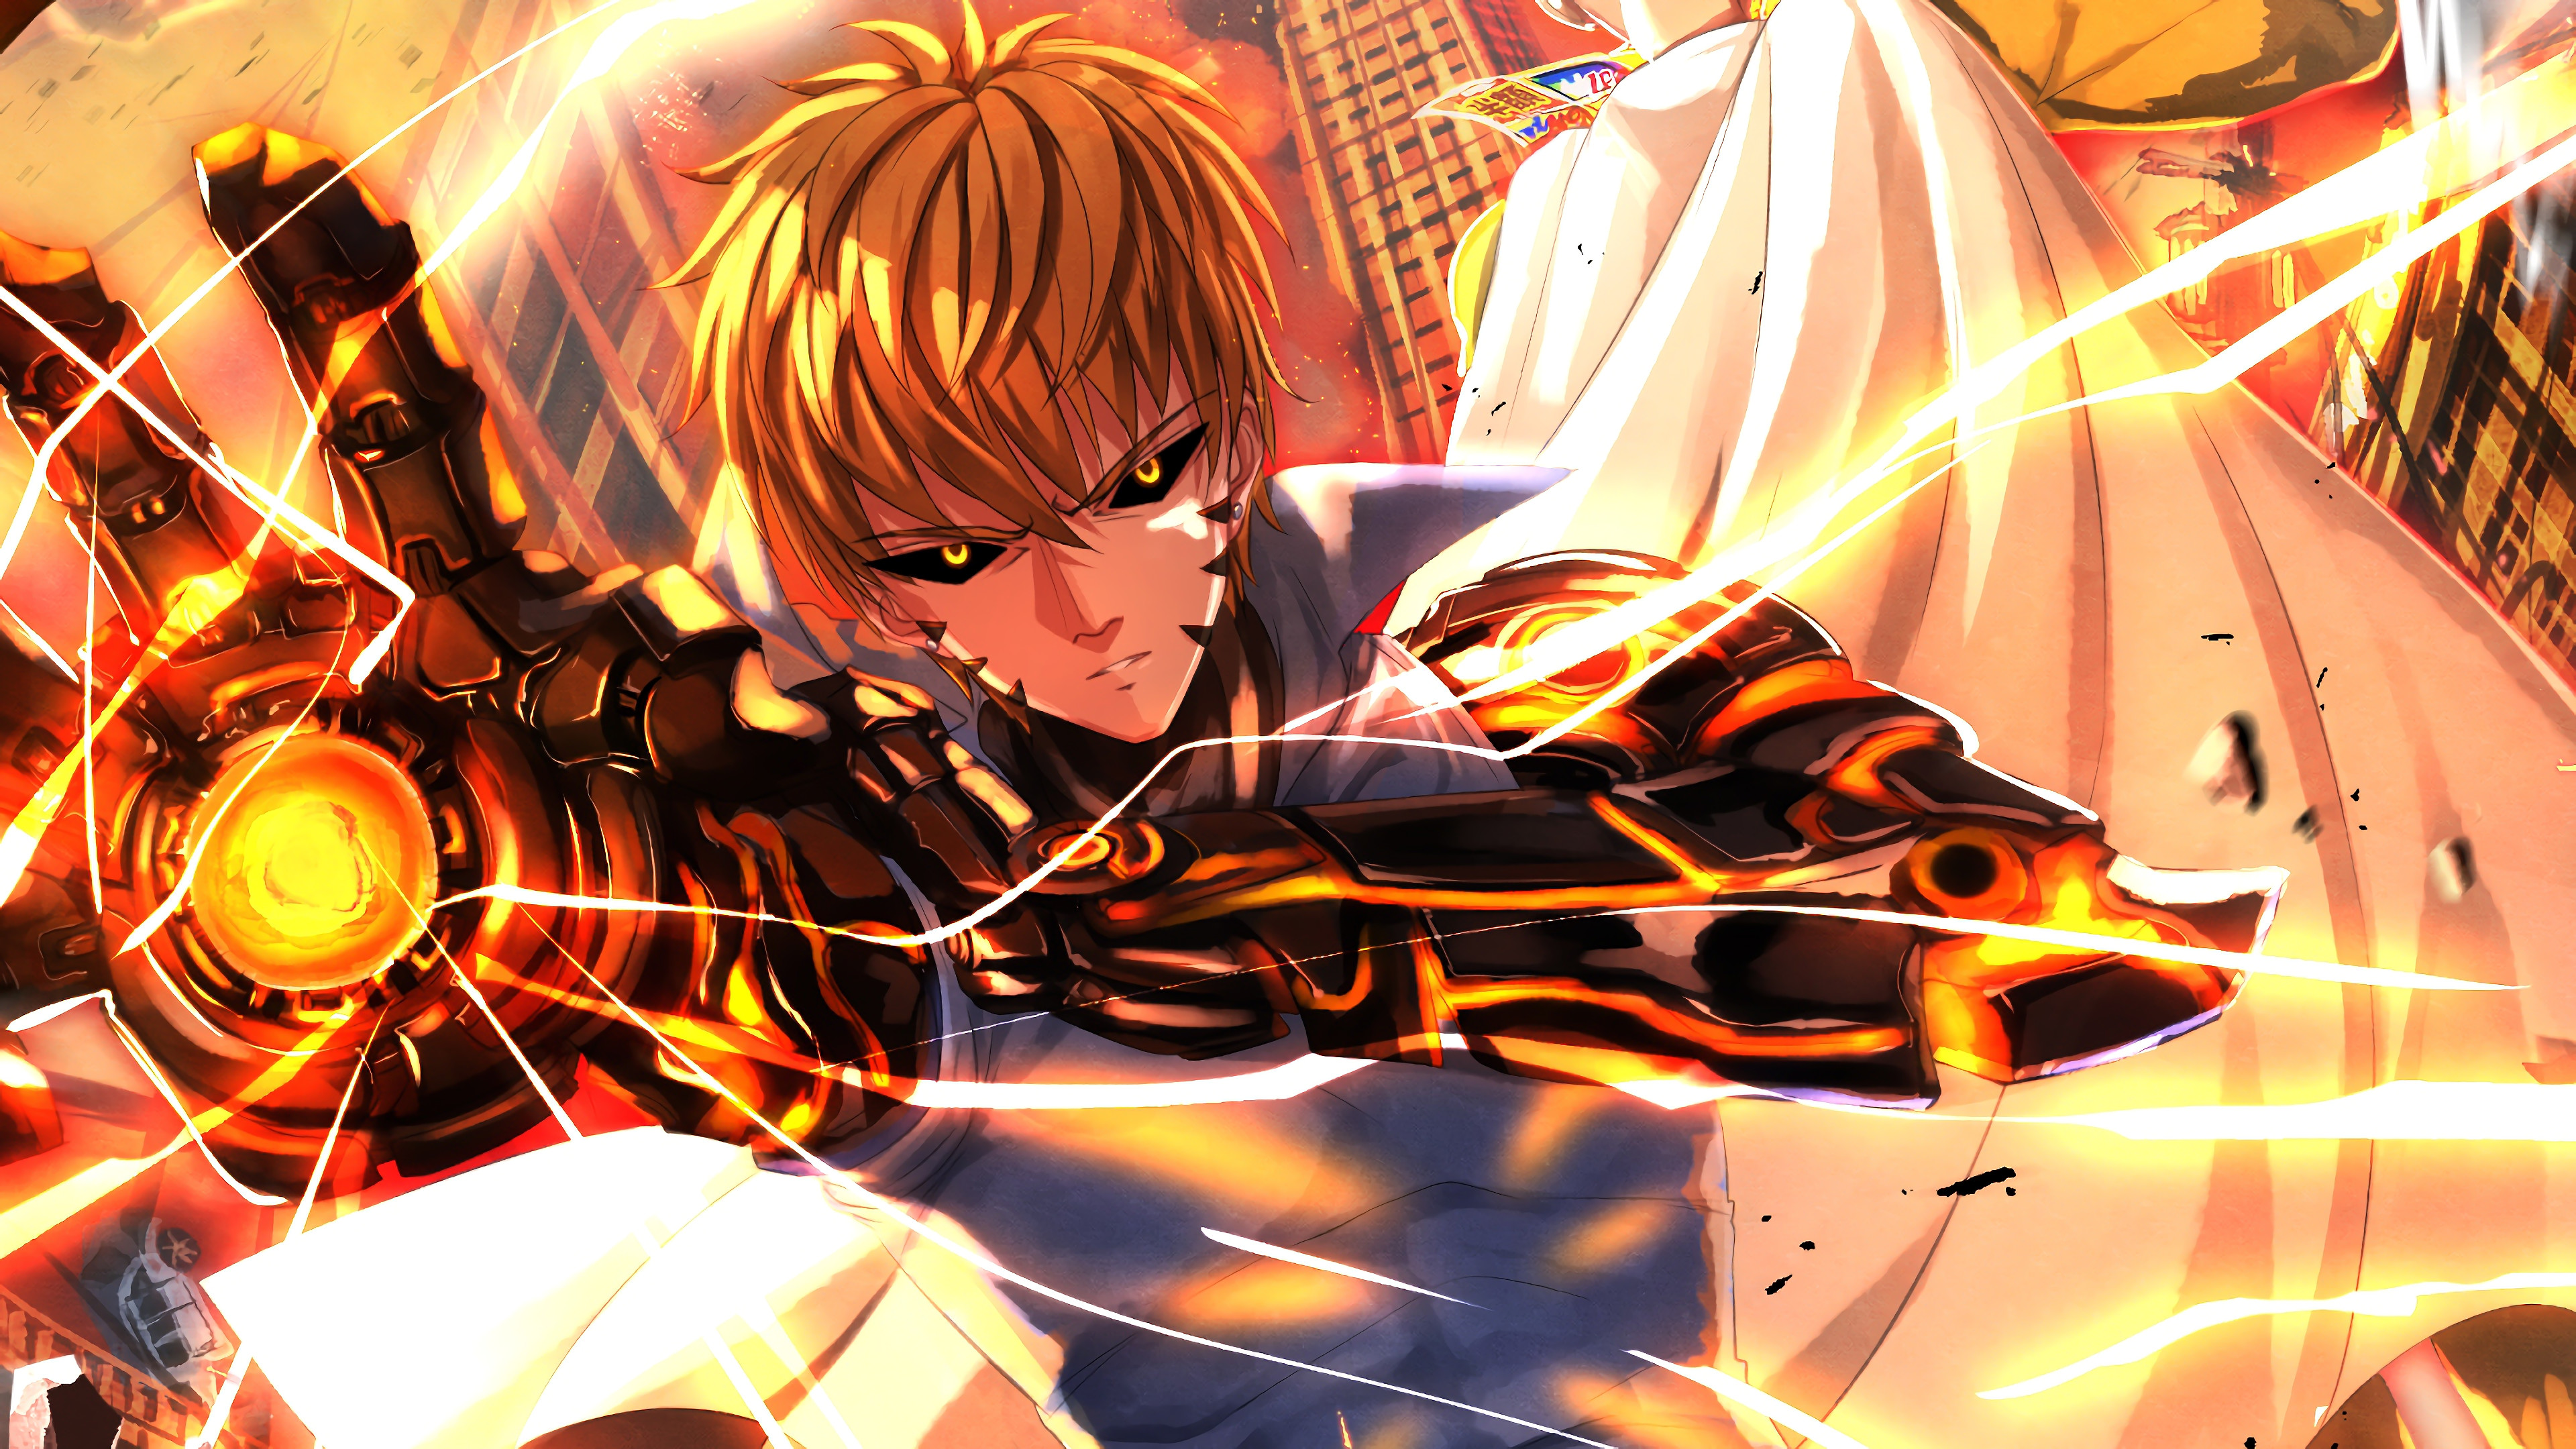 One Punch Man Imagenes Hd 2231172 Hd Wallpaper Backgrounds